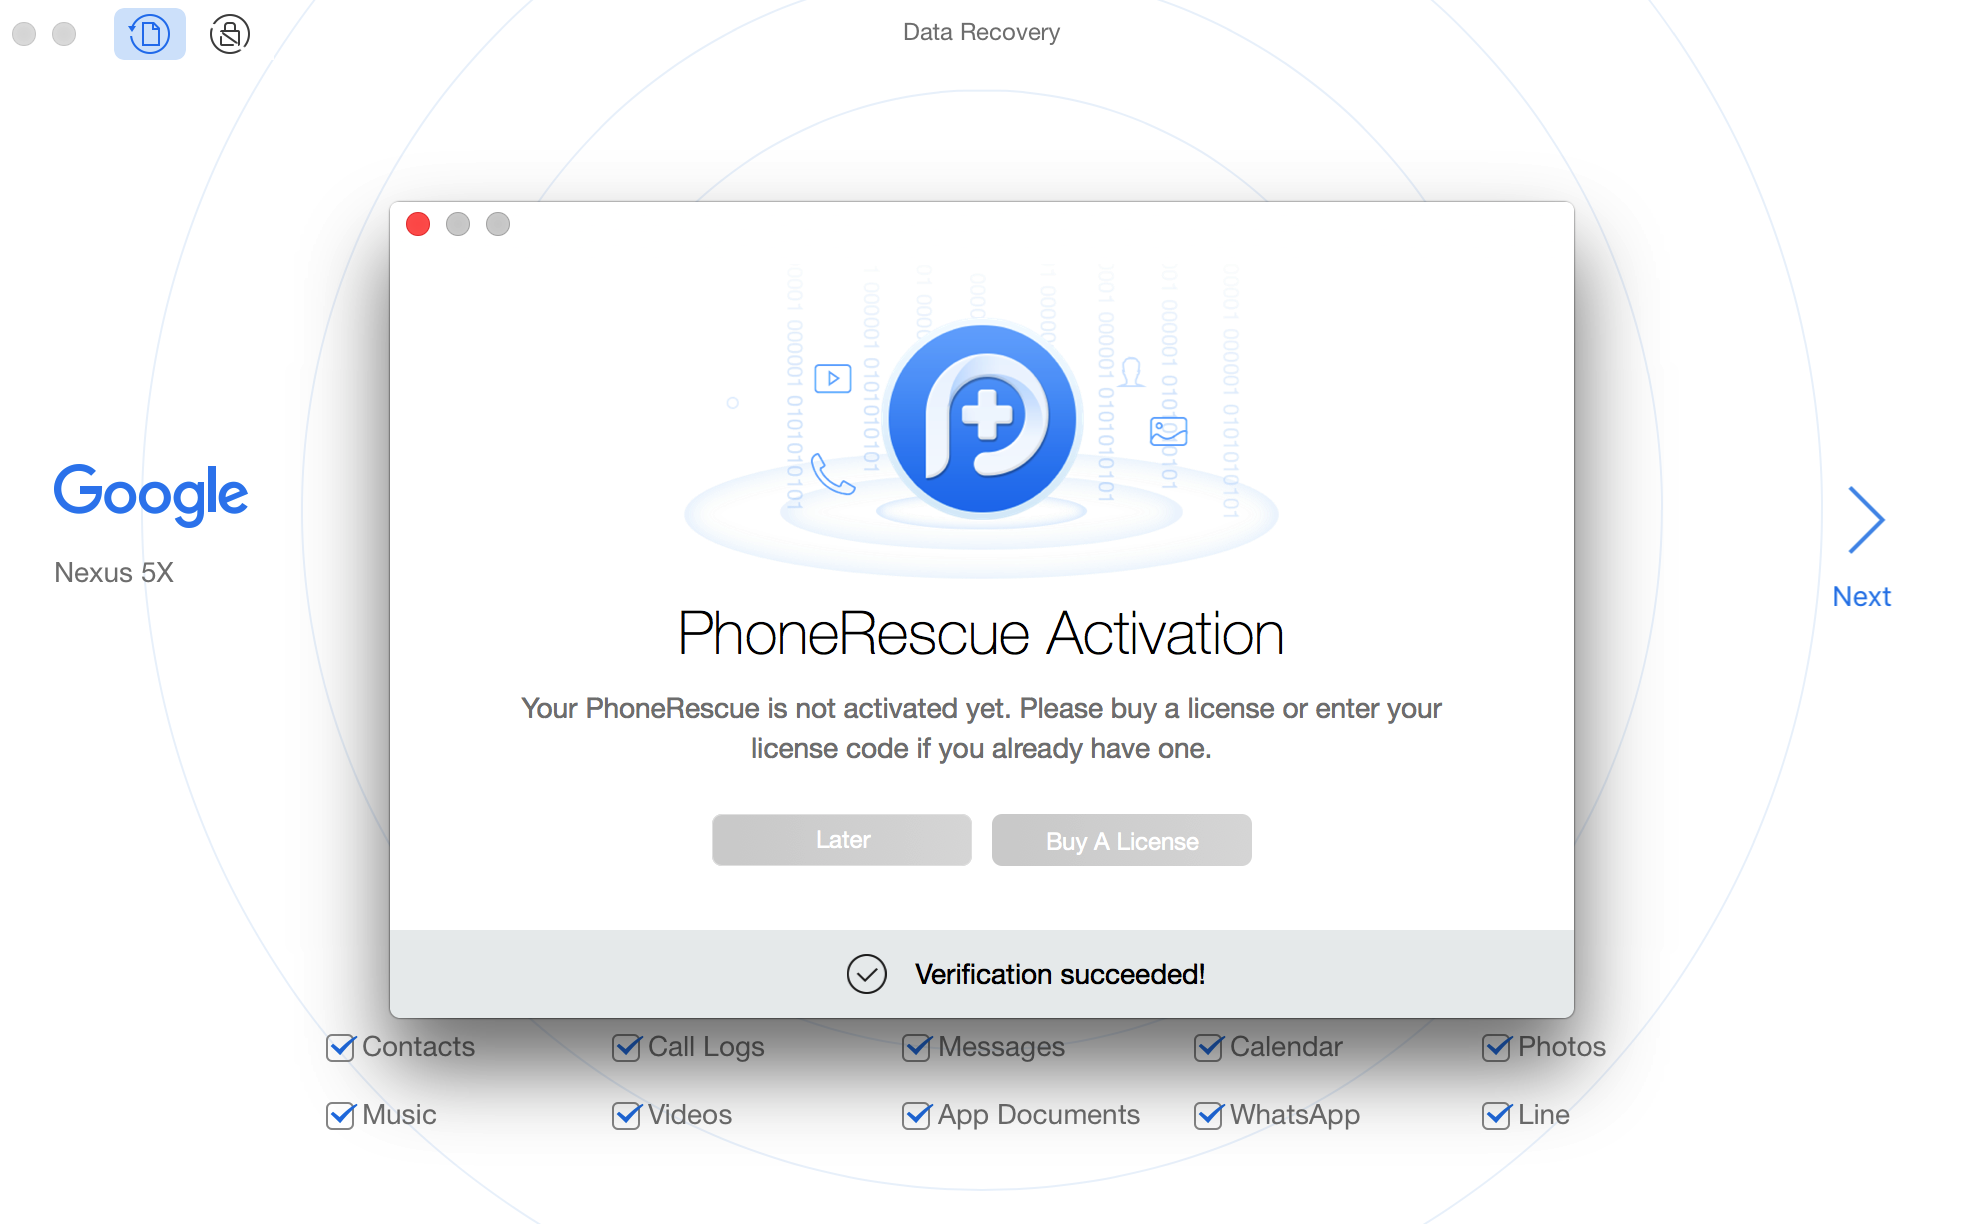 Succeed in Registering PhoneRescue for Google